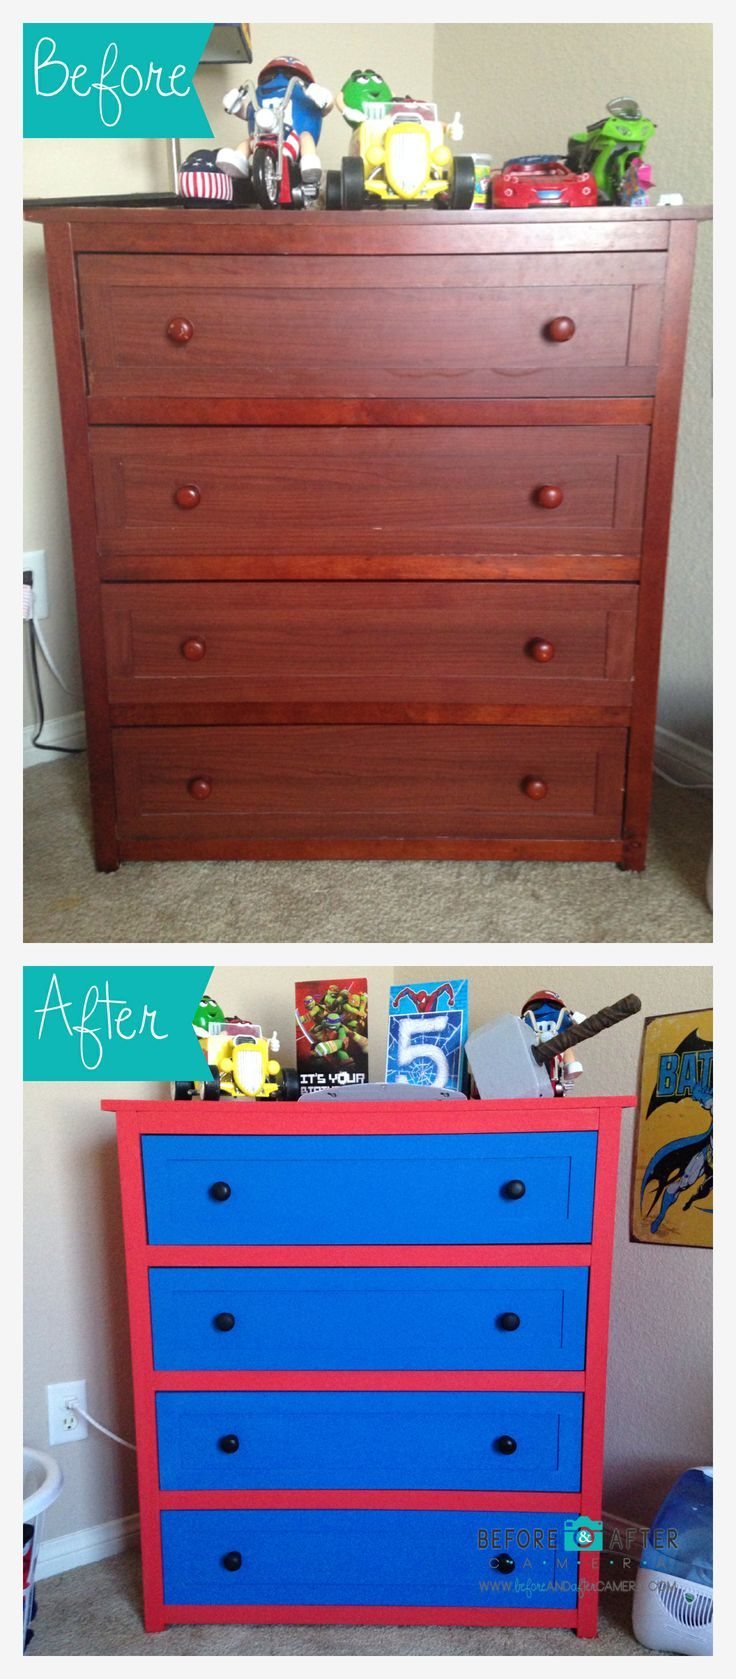 Dresser makeover for my son's room : Spiderman theme - visit to grab an unforgettable cool 3D Super Hero T-Shirt!